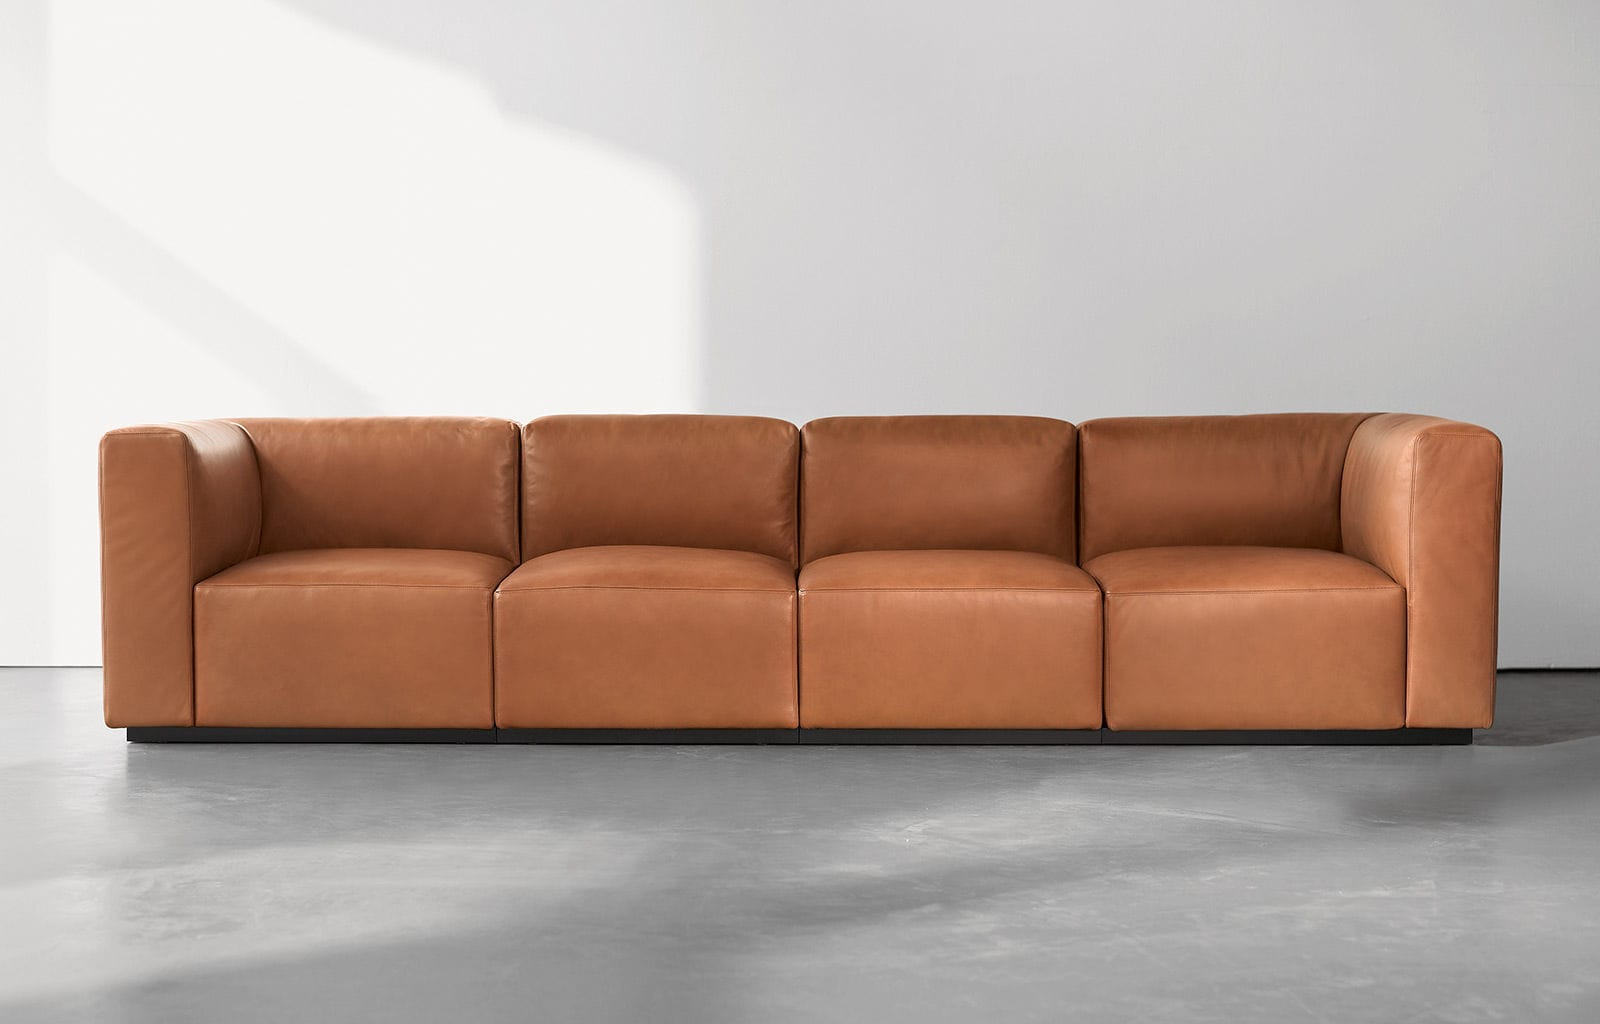 Modular sofa contemporary leather 7 seater and more LIVING